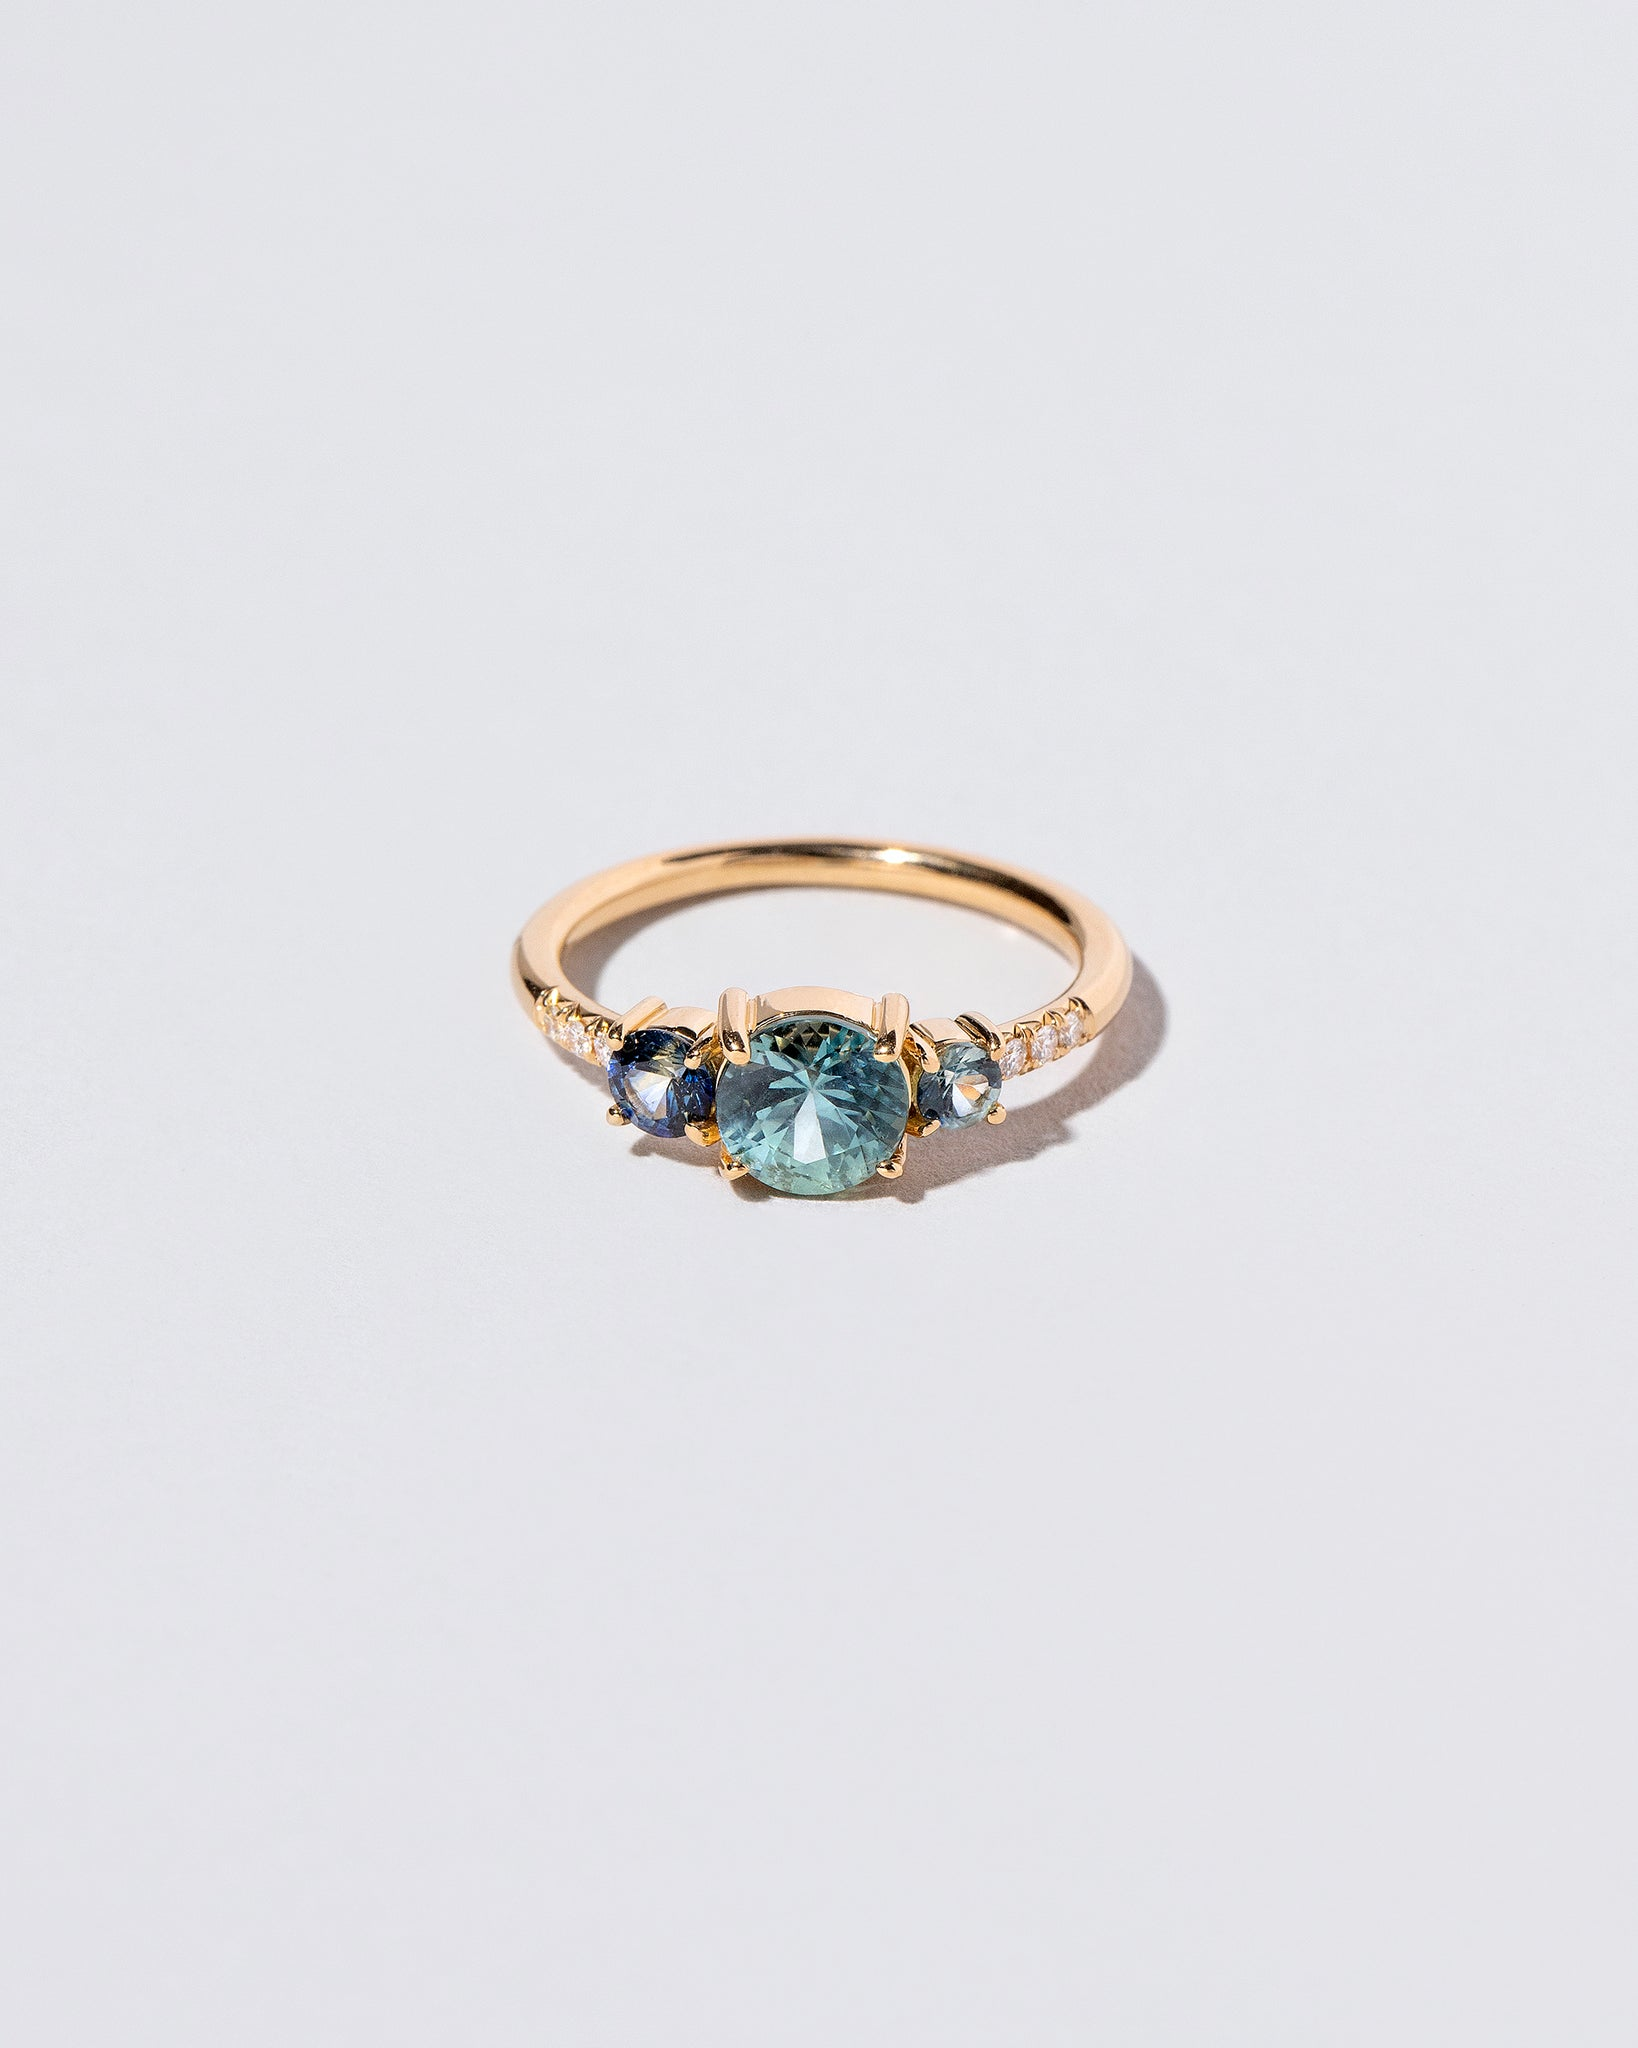 Orion Ring - Blue Sapphire on light color background